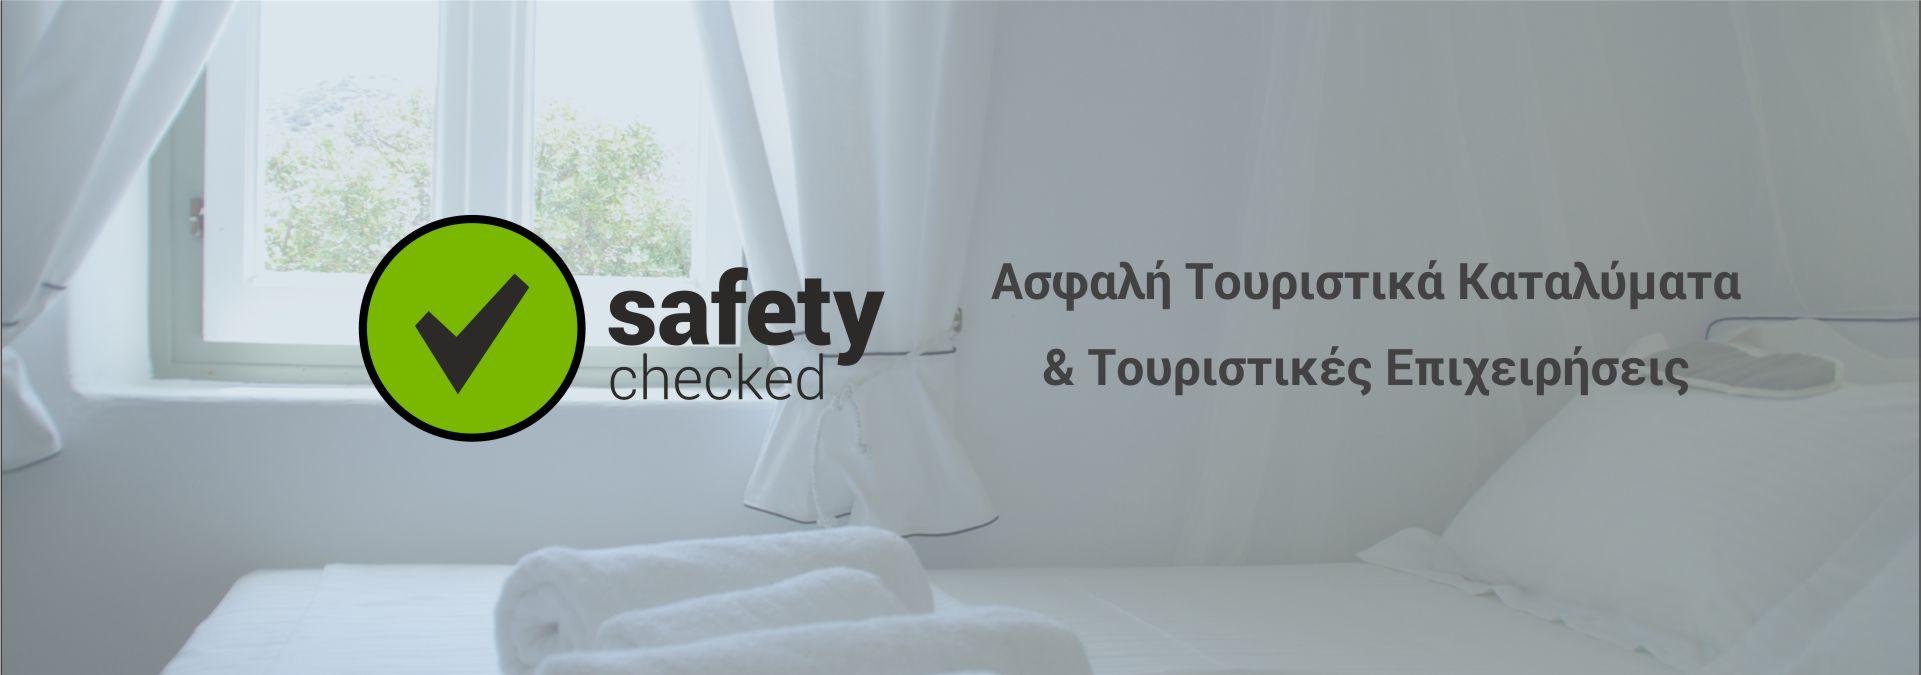 safetychecked